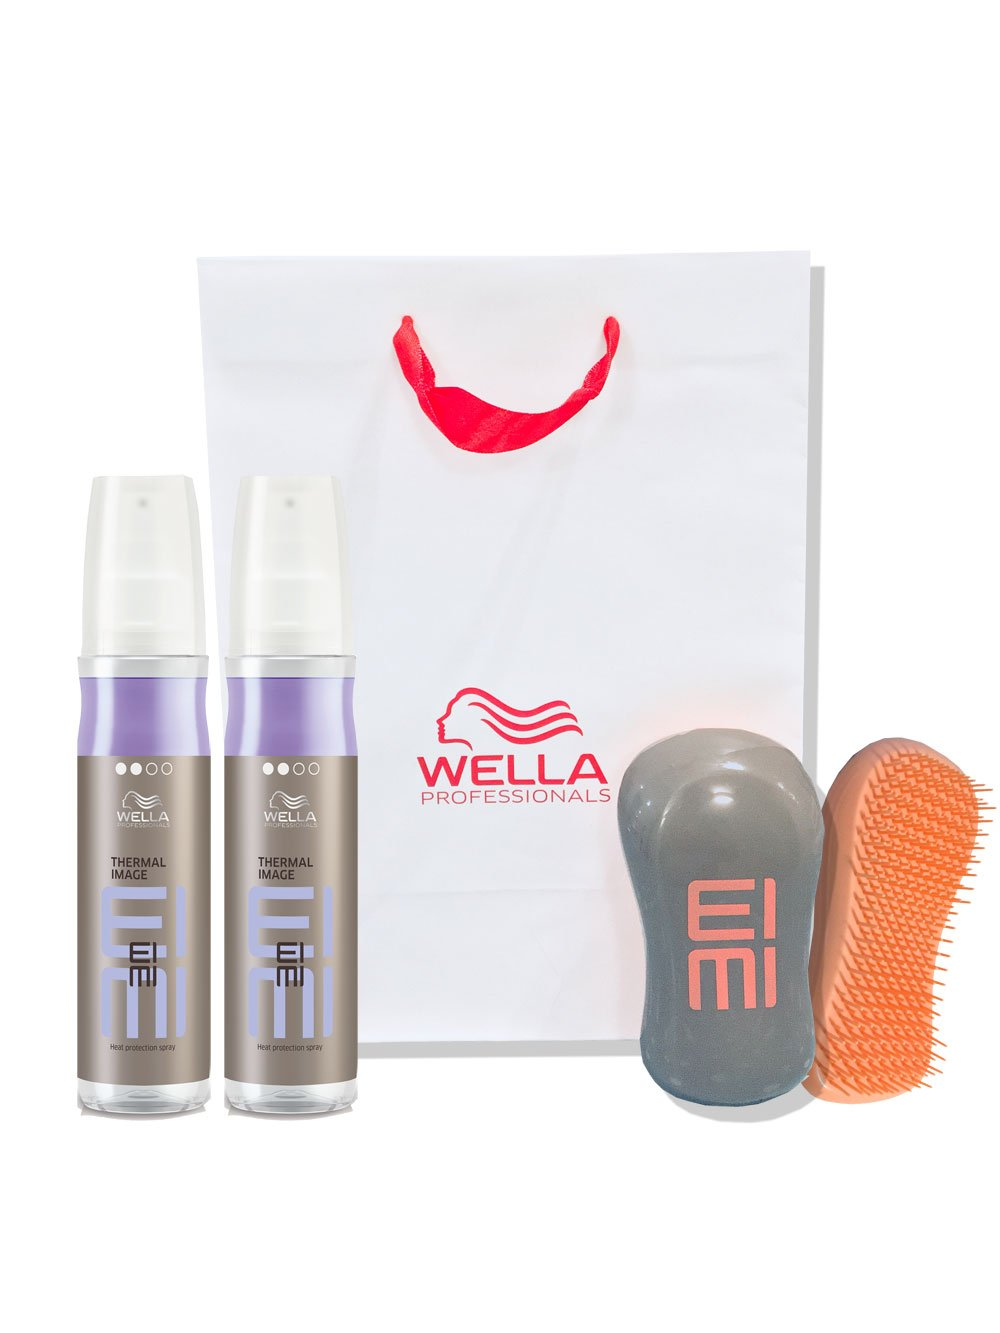 Wella Professionals Eimi Thermal Image Heat Protection Spray Gift Set Wella Eimi